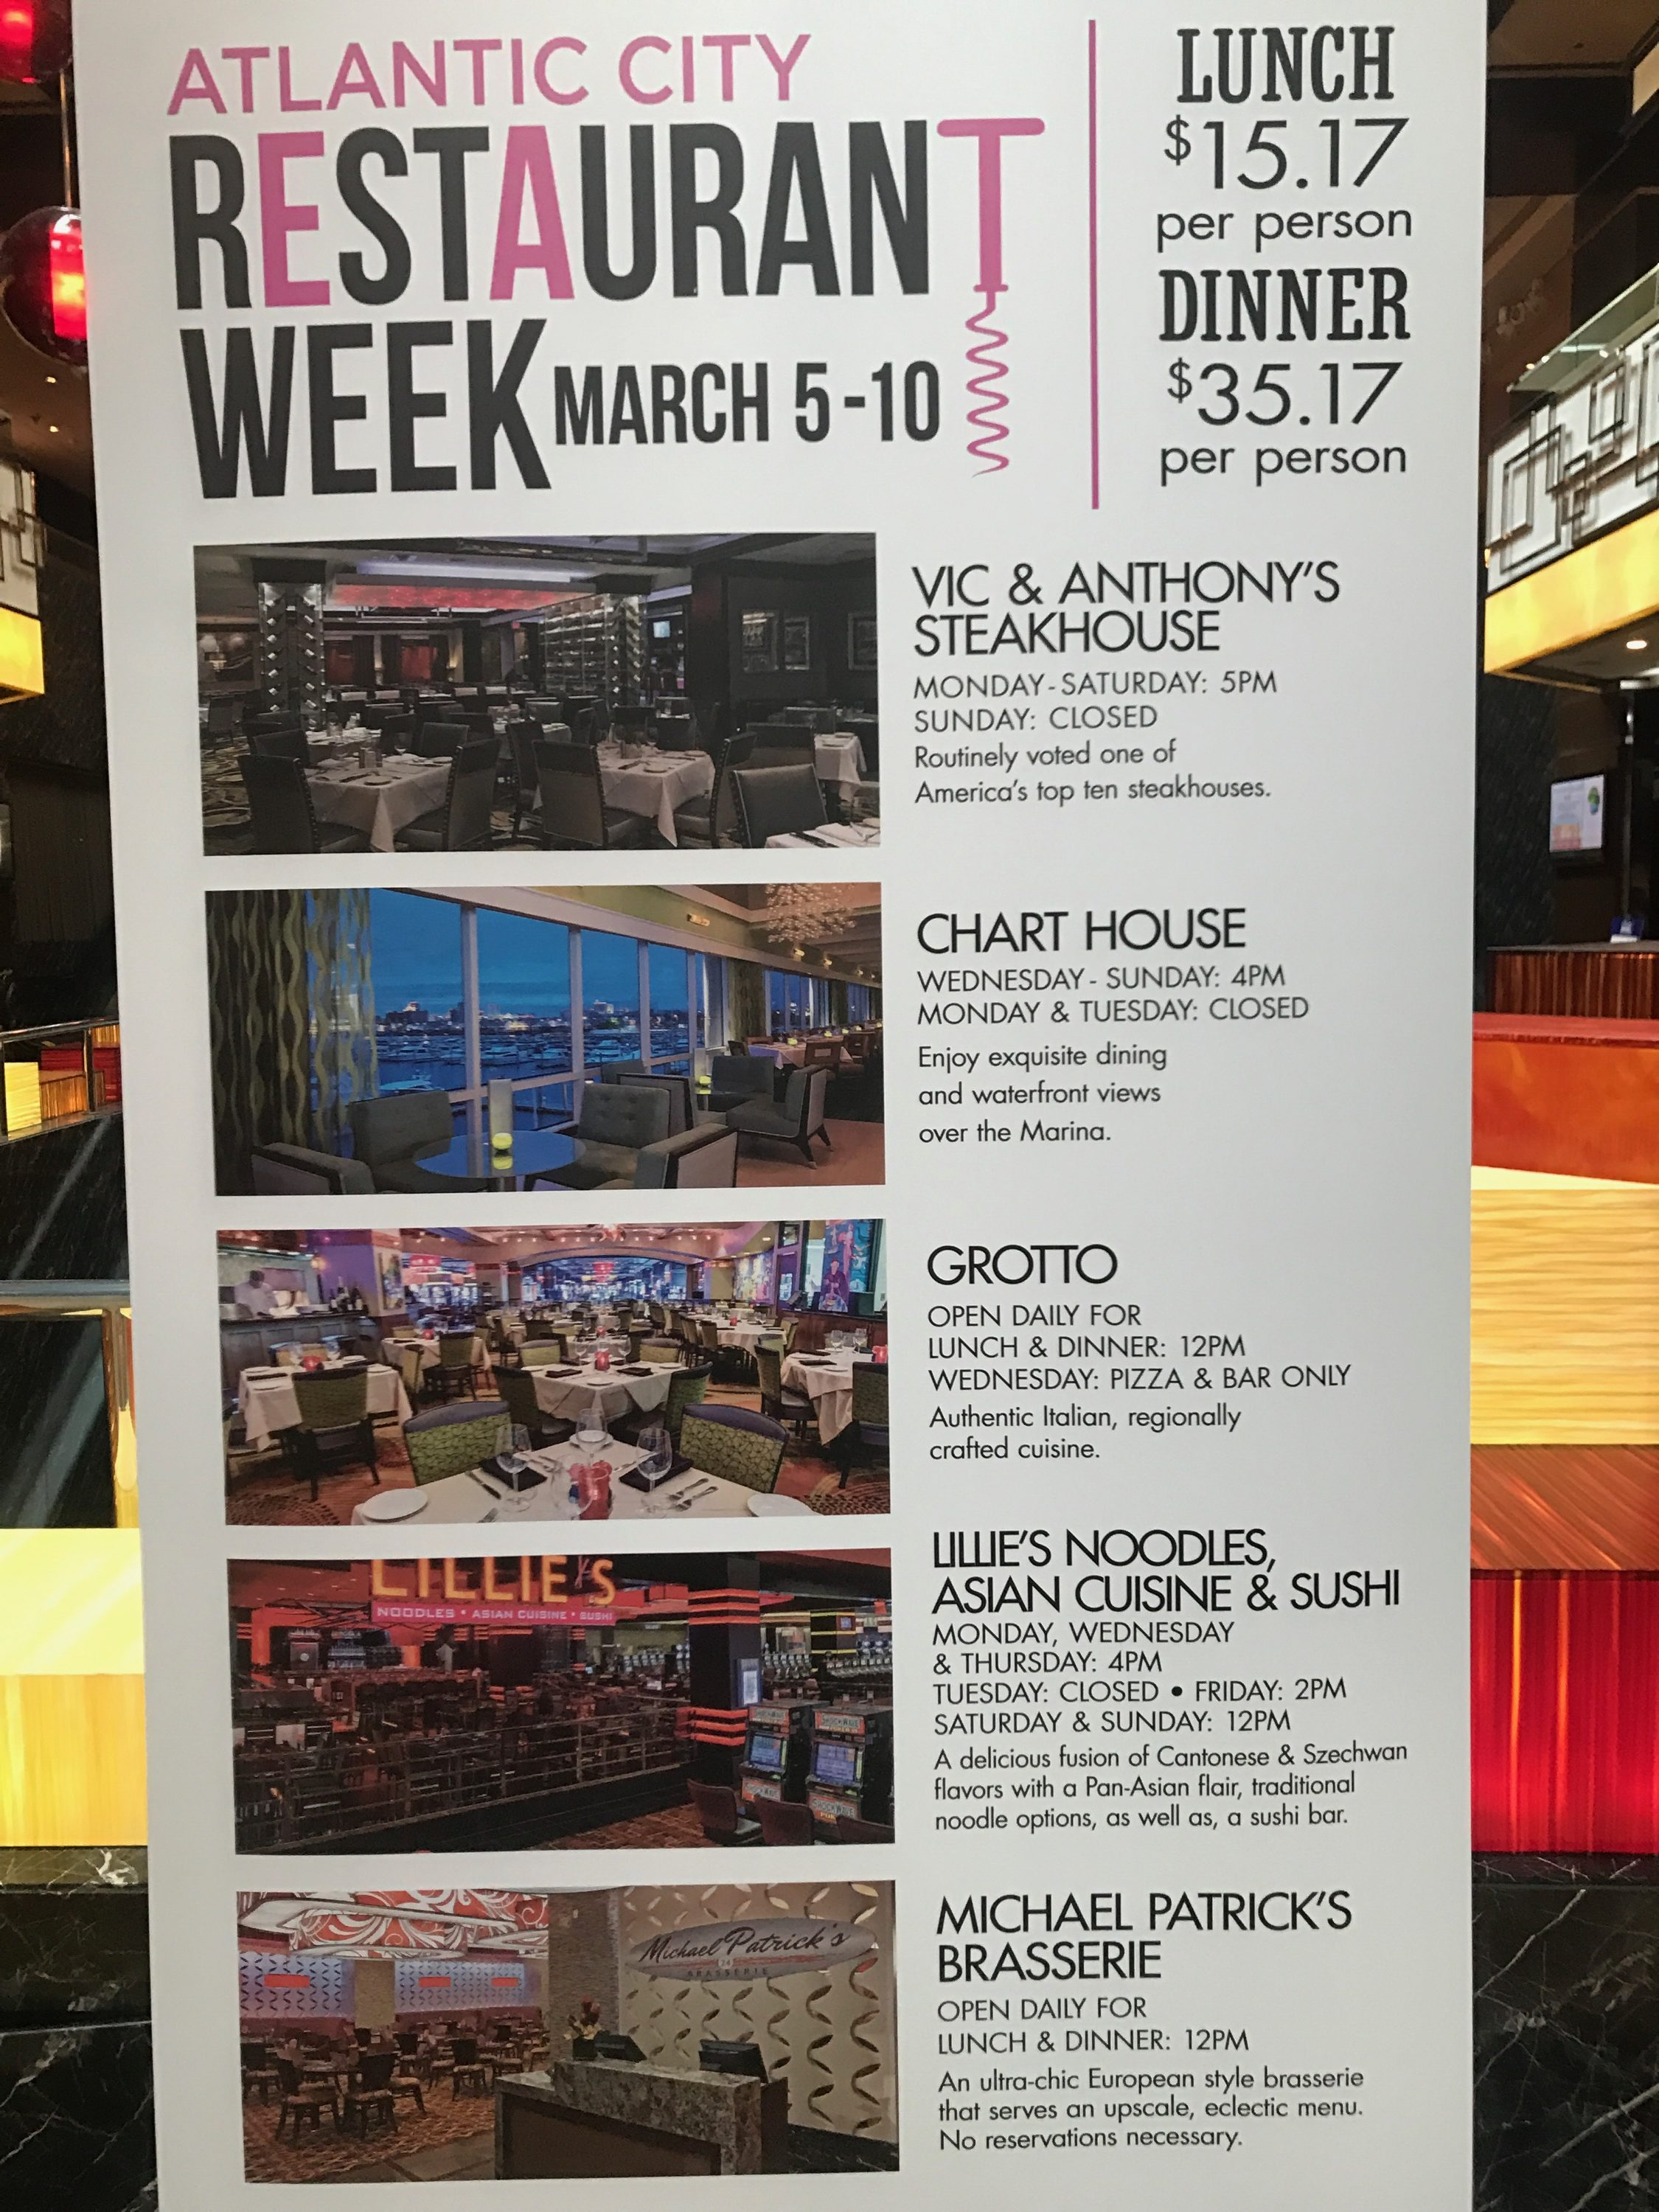 atlantic city restaurant week march 5-10, 2017 – my town gurus